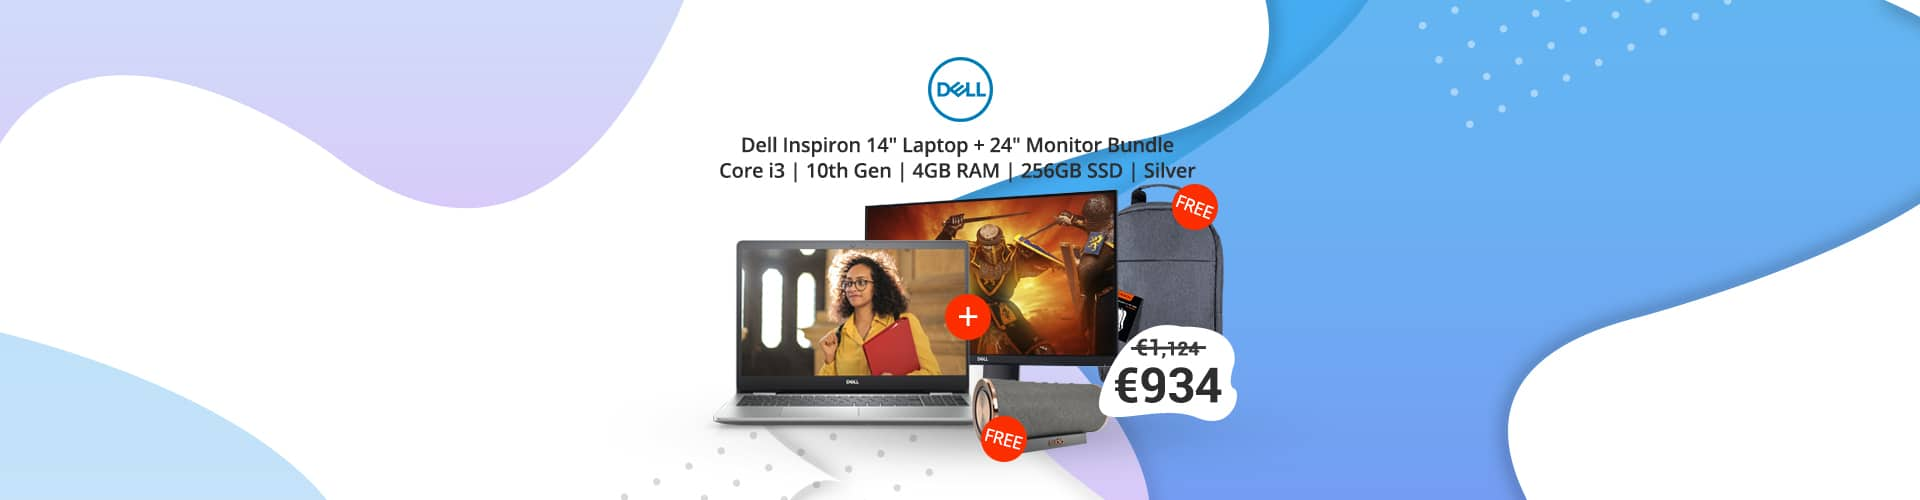 Dell Inspiron 14 inch i3 5490 Laptop + Dell 24 inch Monitor P2419H Bundle